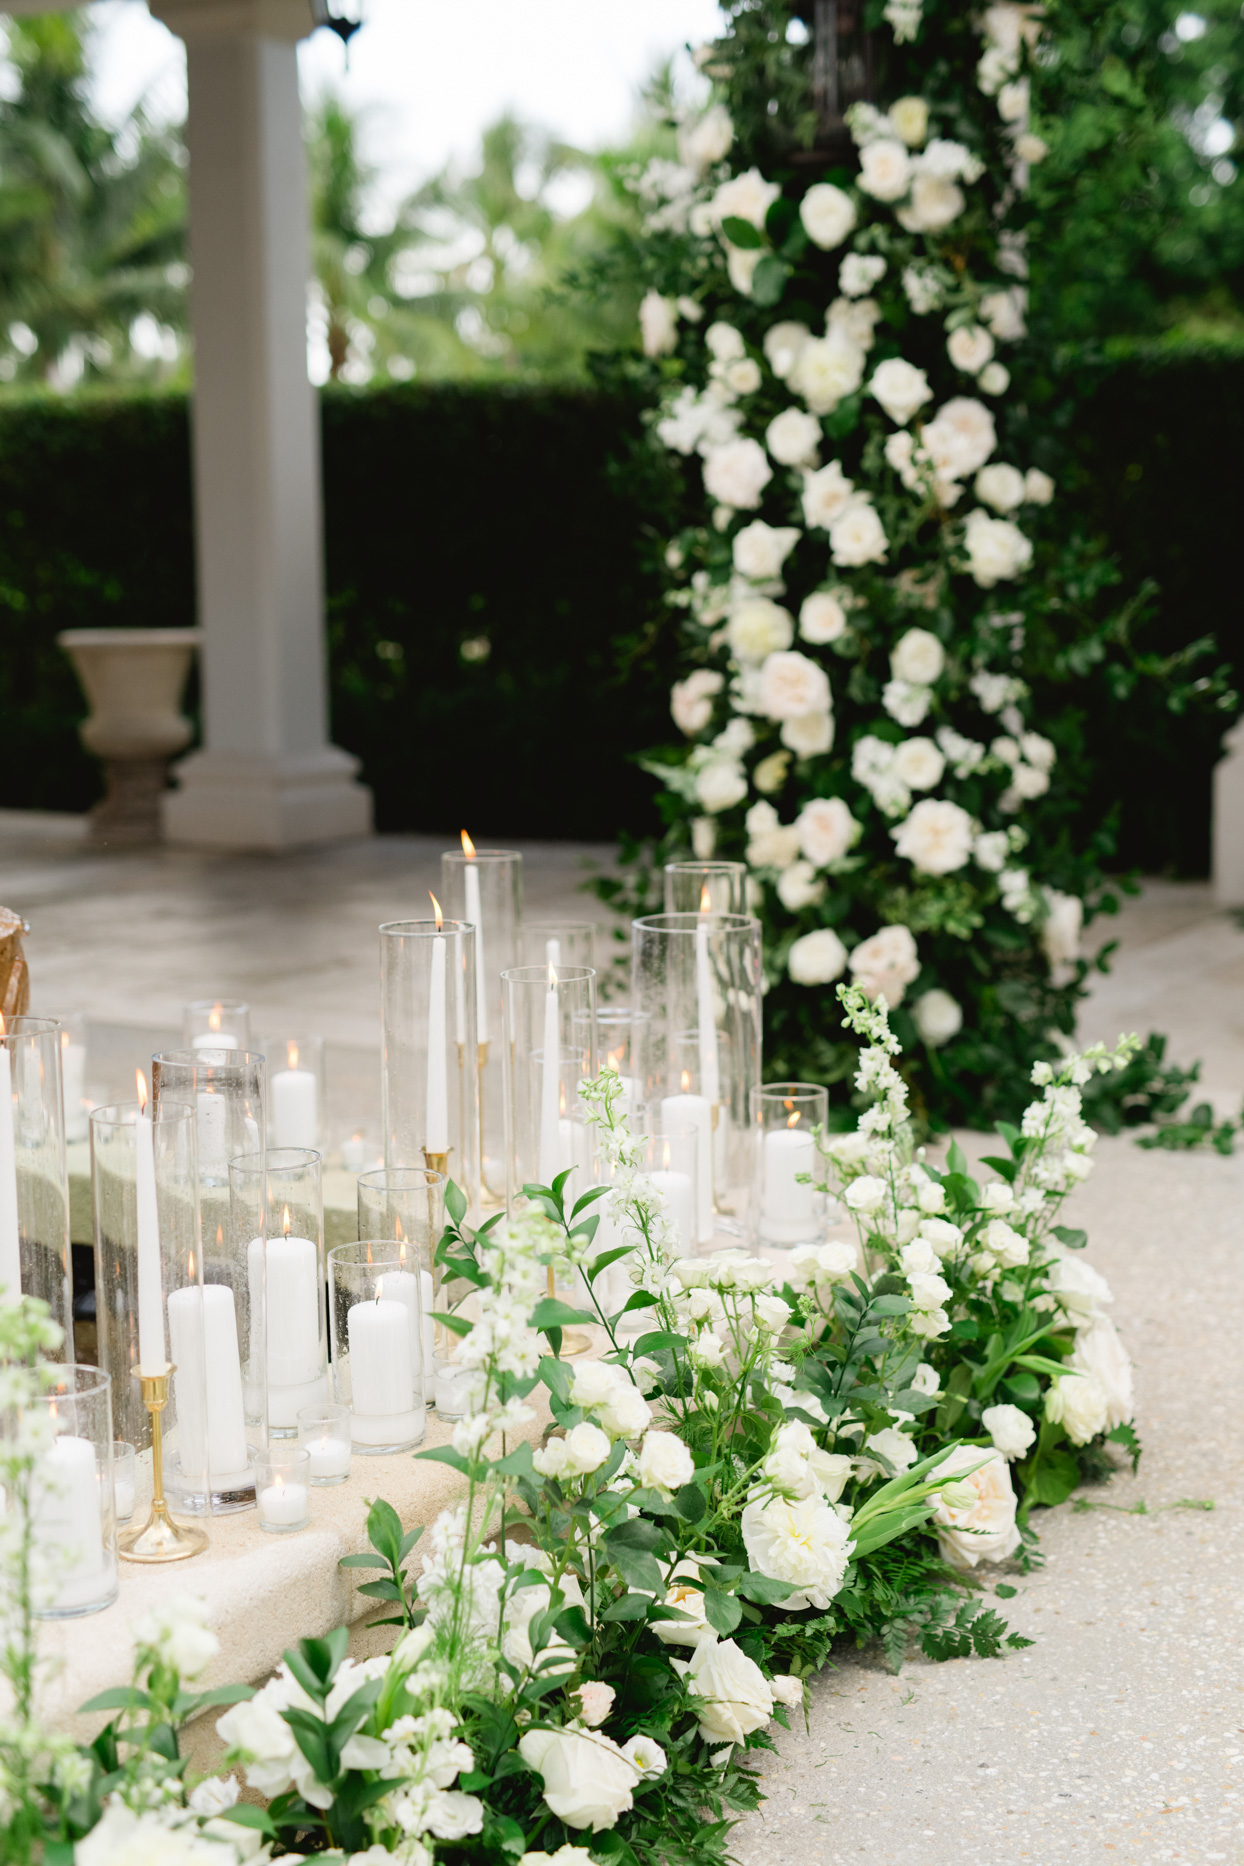 candles on stone walkway with white florals